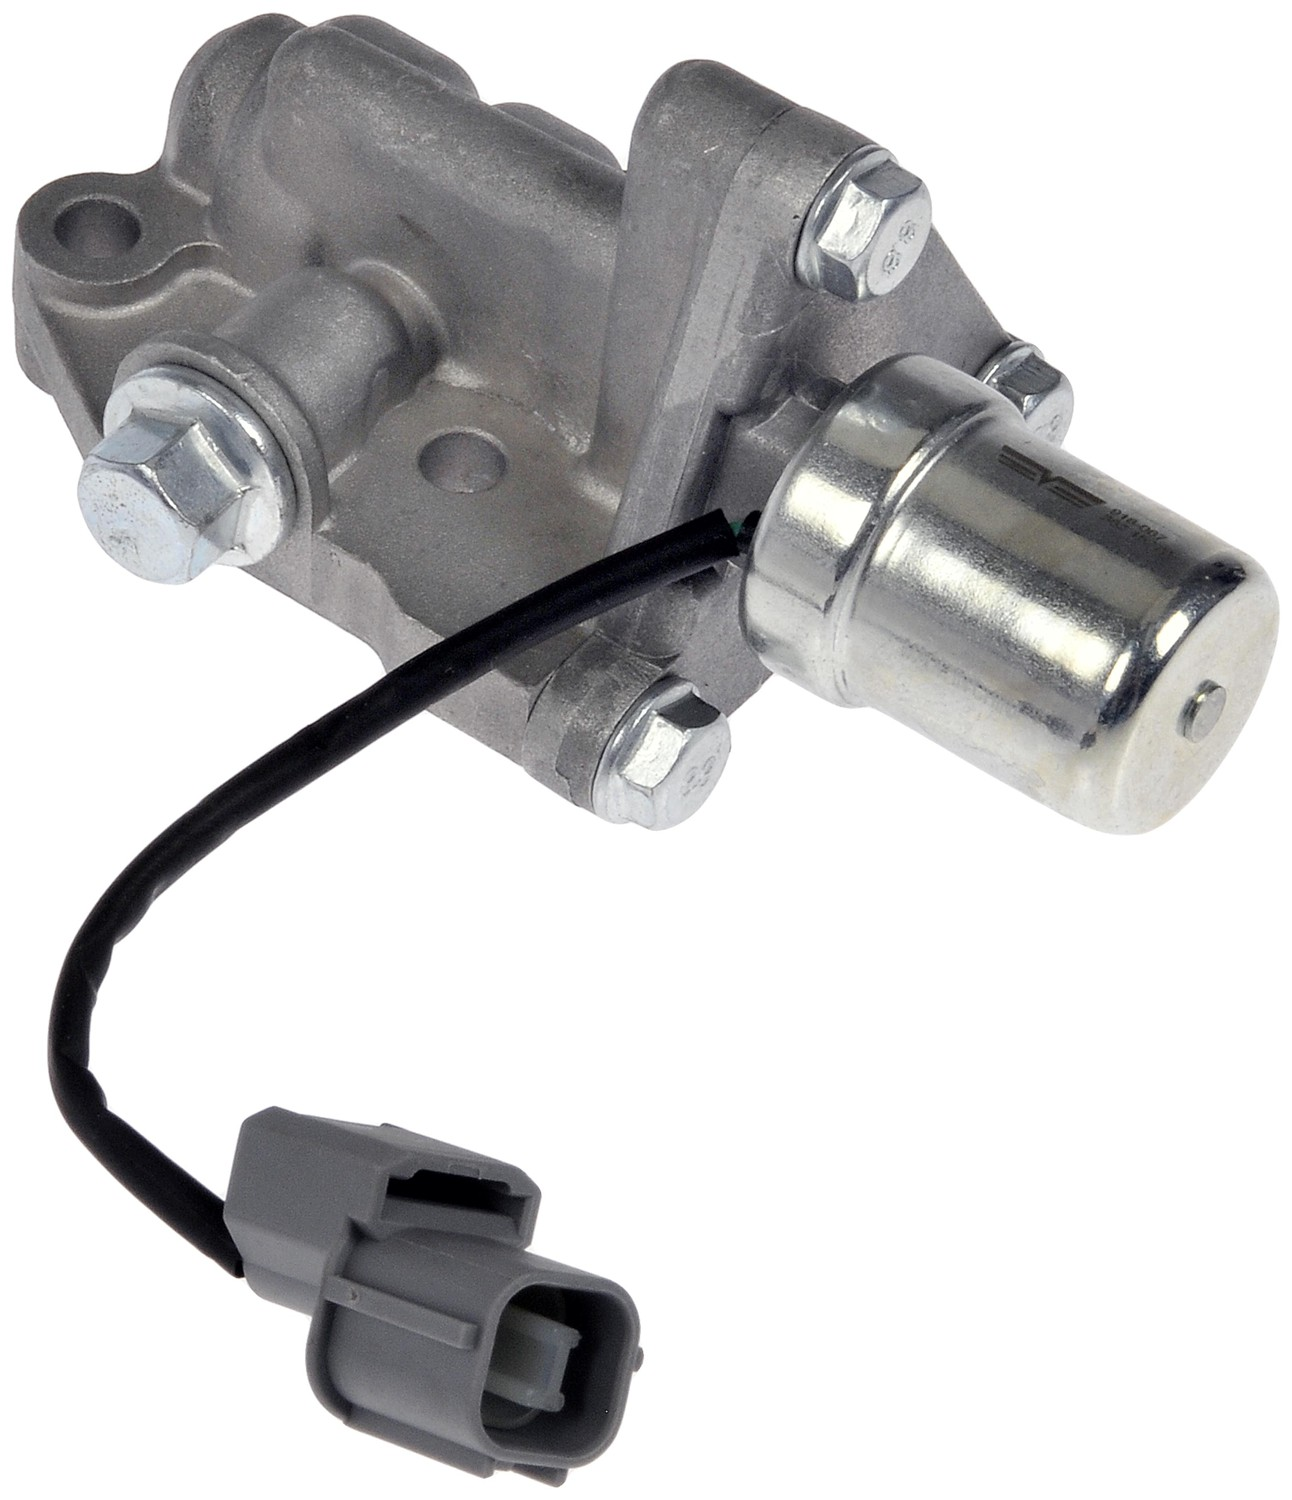 1997 Acura CL Variable Timing Solenoid